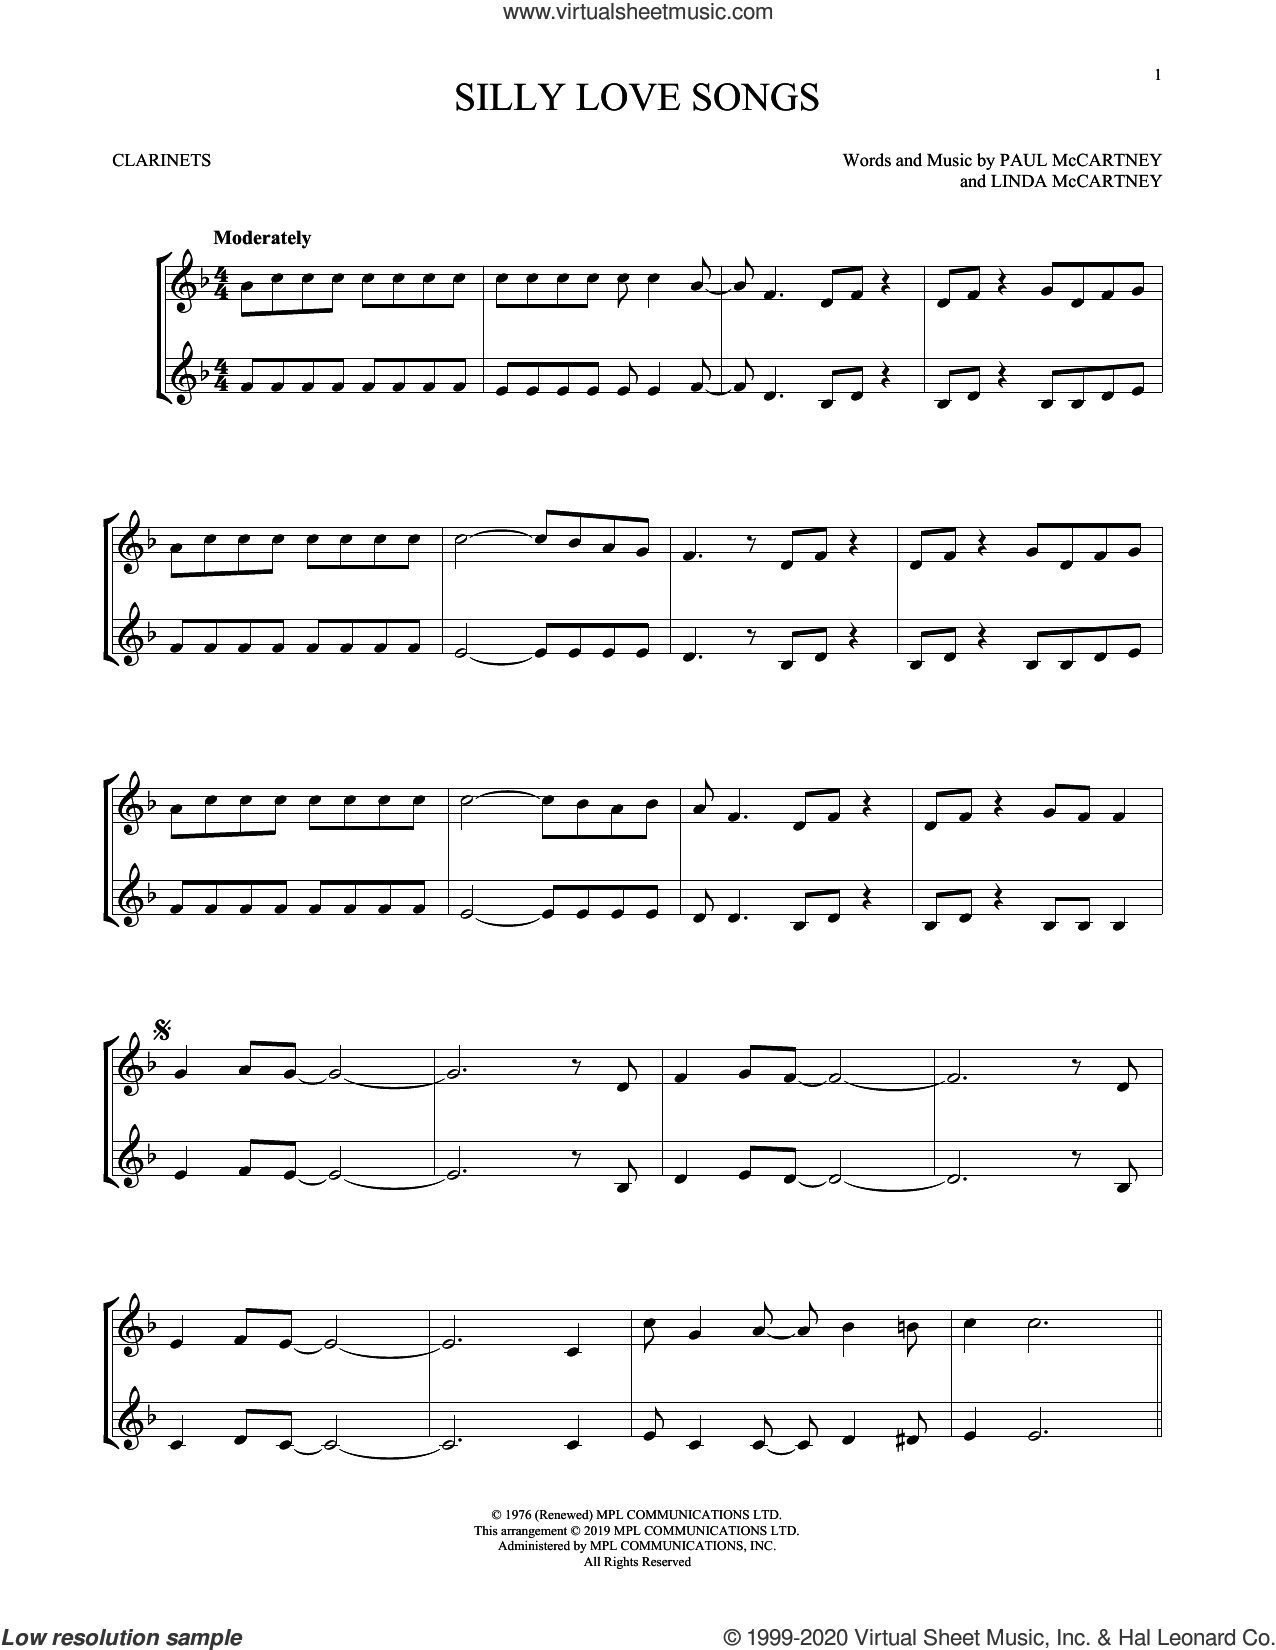 Silly Love Songs sheet music for two clarinets (duets) by Wings, Linda McCartney and Paul McCartney, intermediate skill level